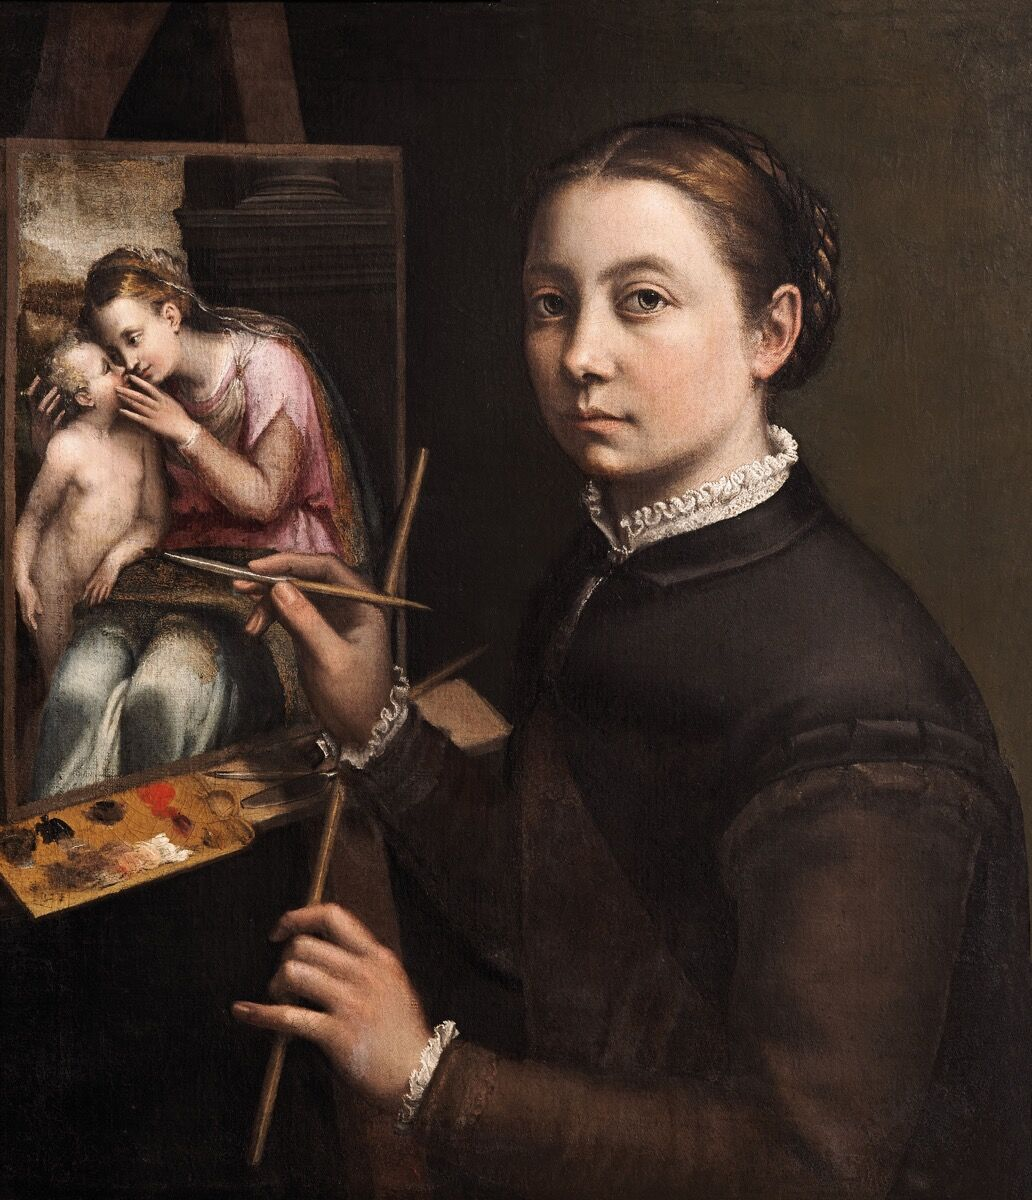 Sofonisba Anguissola, Self-Portrait at the Easel, c. 1556–57. Courtesy of the Museo del Prado.